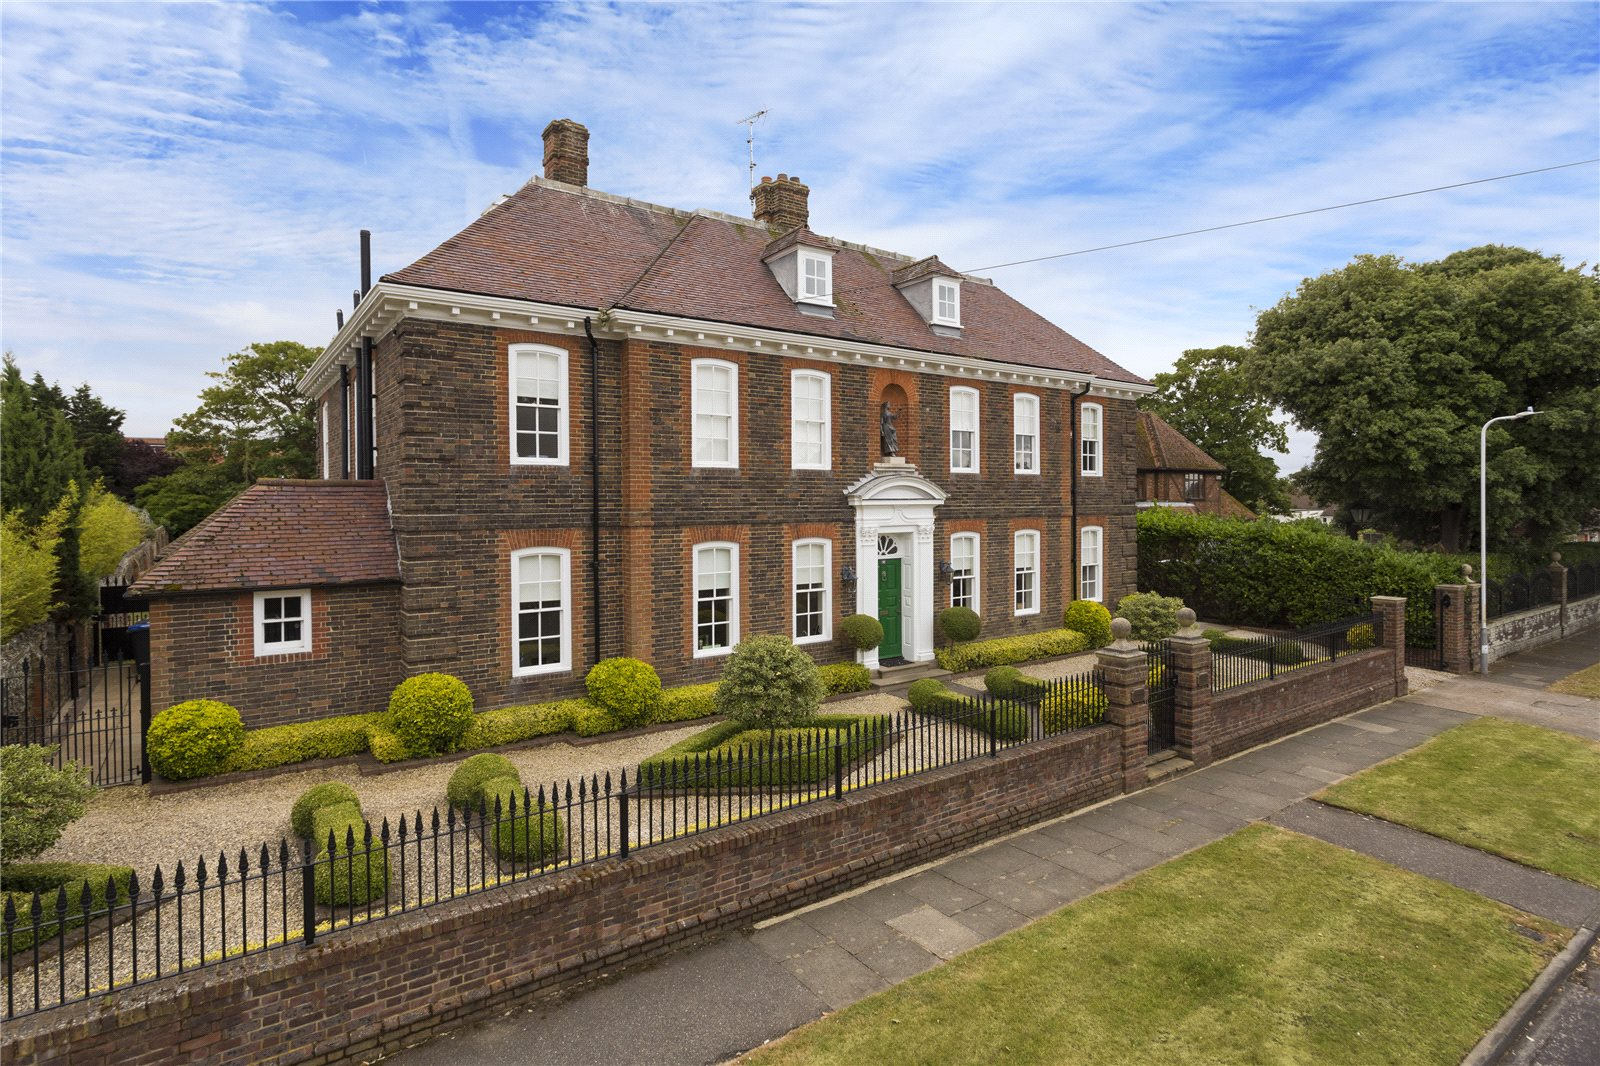 Single Family Home for Sale at Shakespeare Road, Birchington, Kent, CT7 Birchington, England